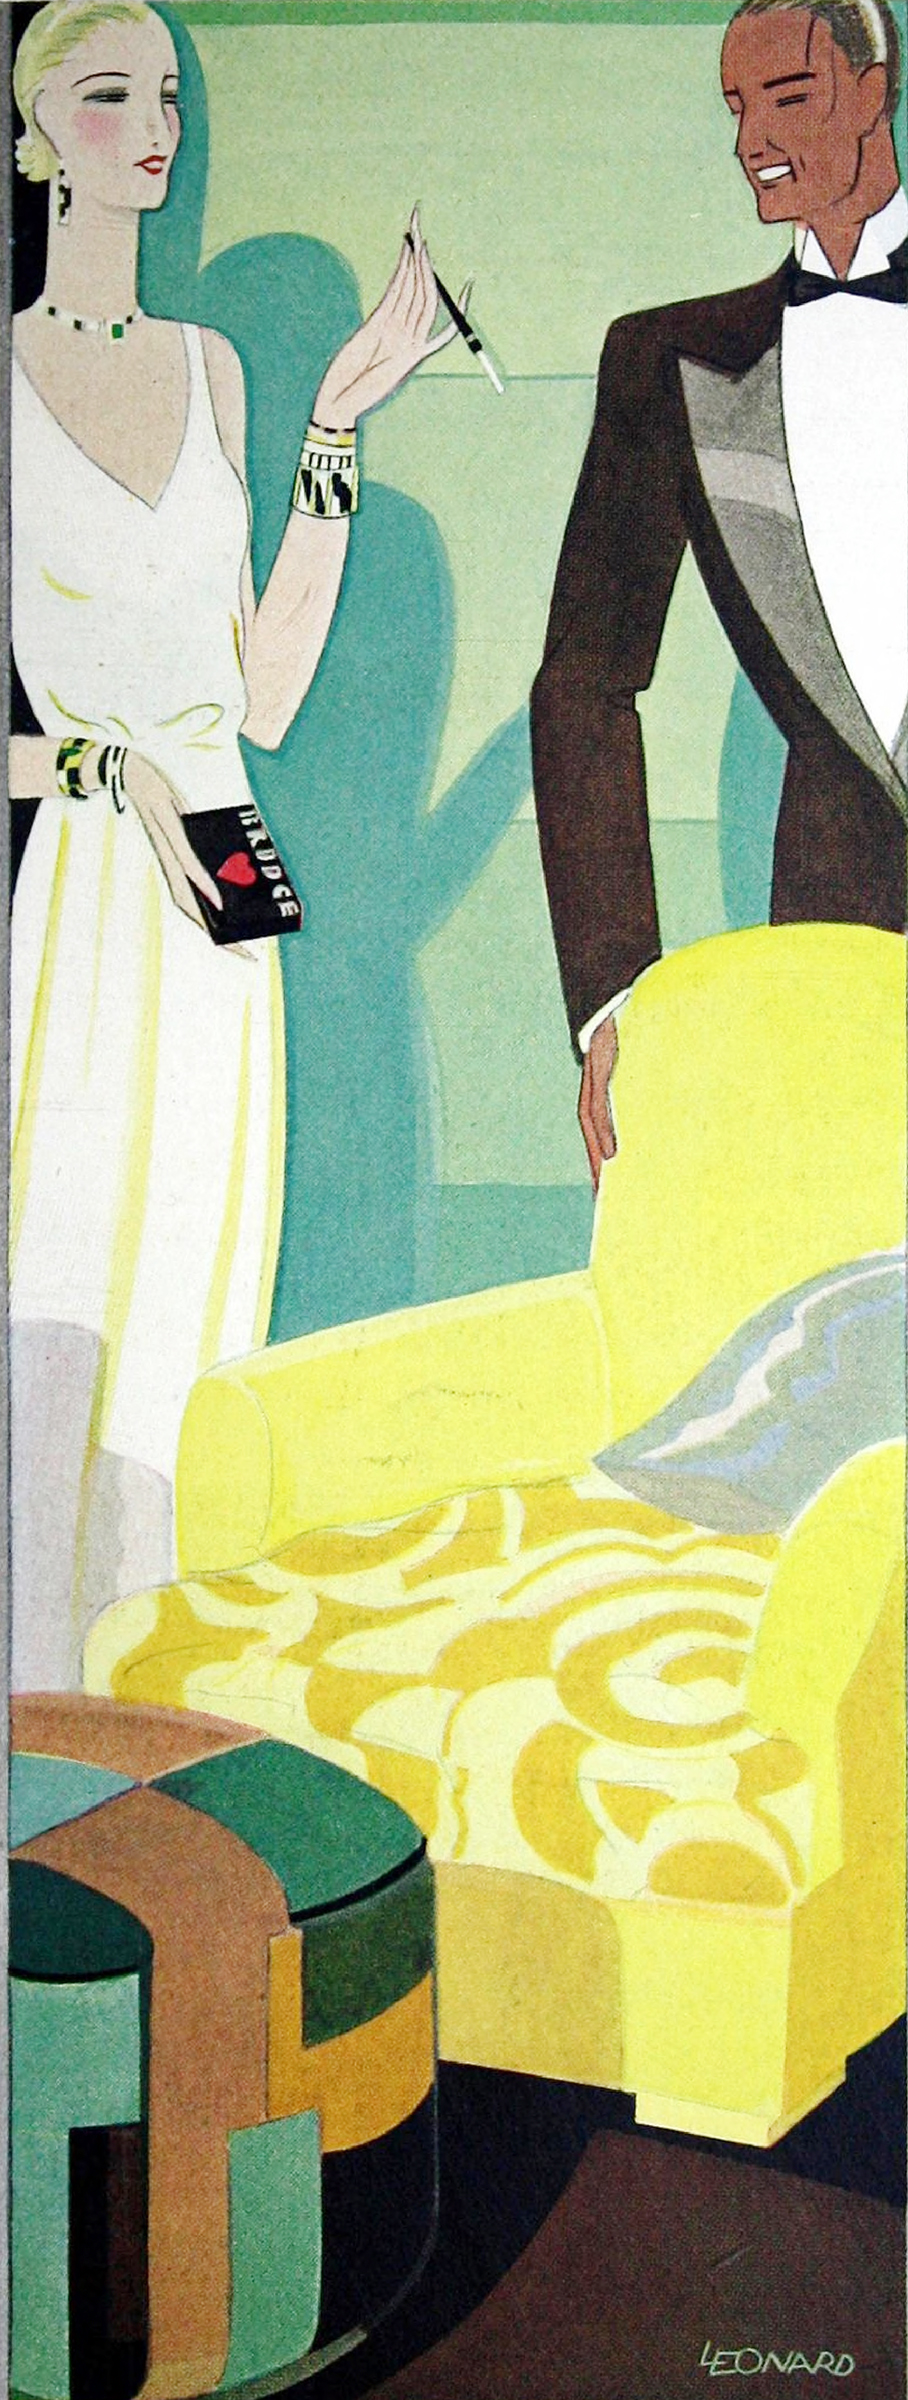 1000 images about art deco n 2 no pin limits on pinterest for Art deco illustration